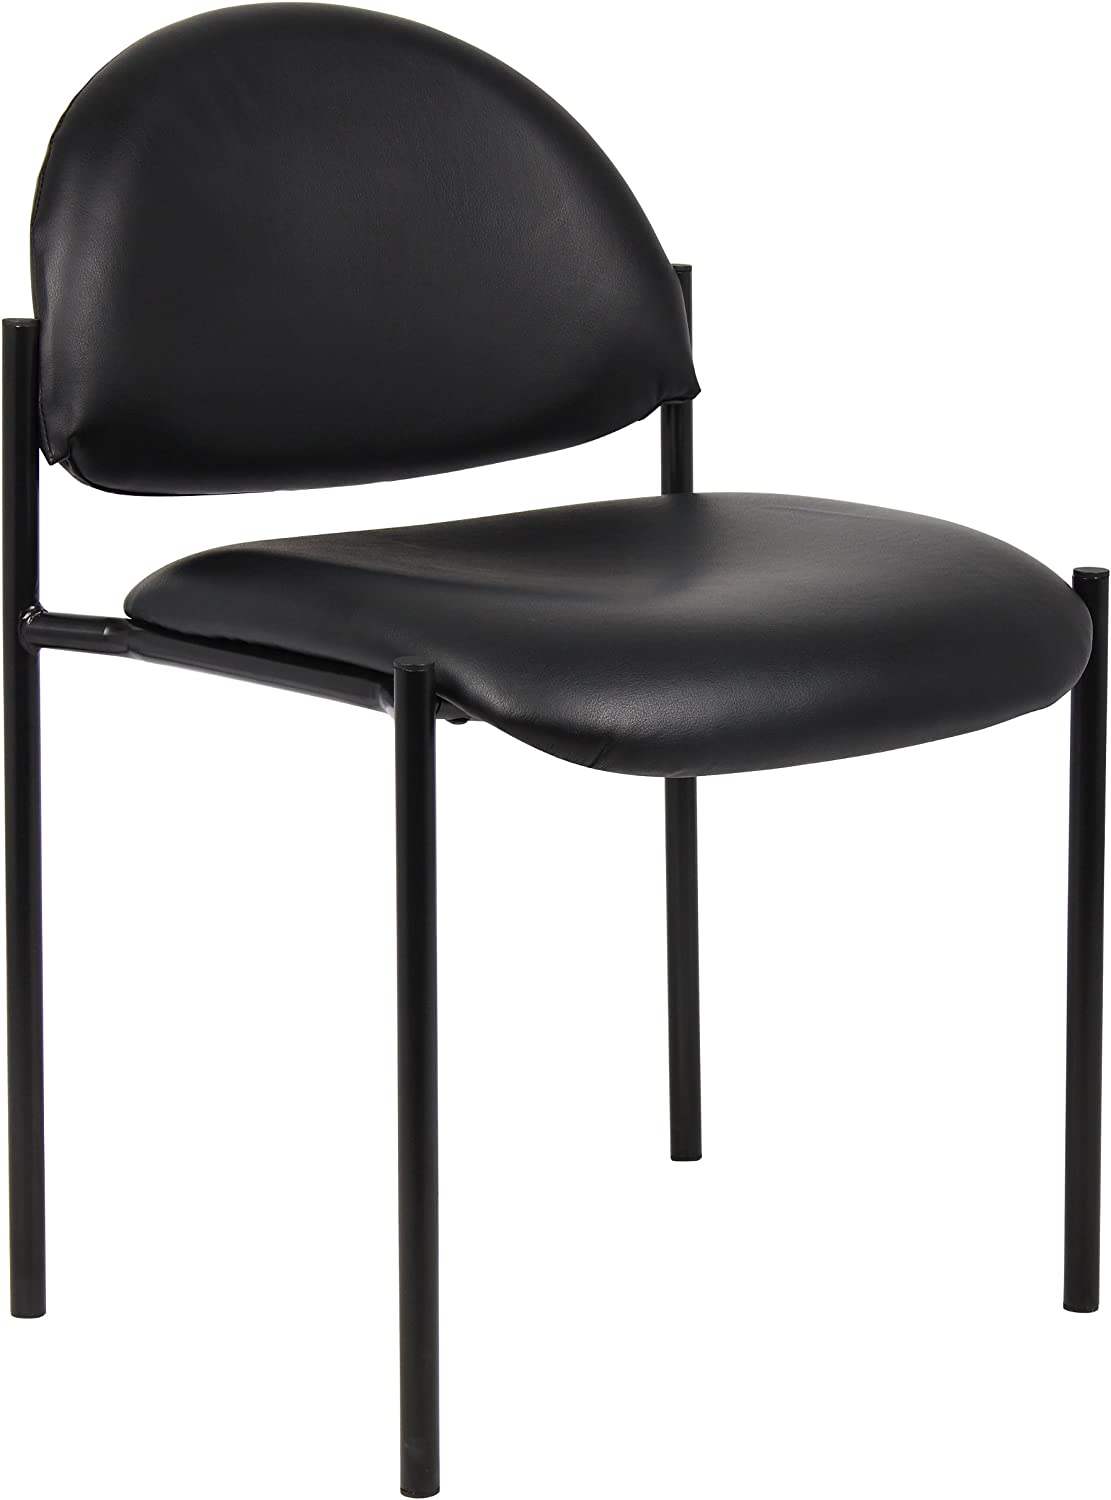 Boss Office Products Dimond Caressoft Stacking Chair in Black